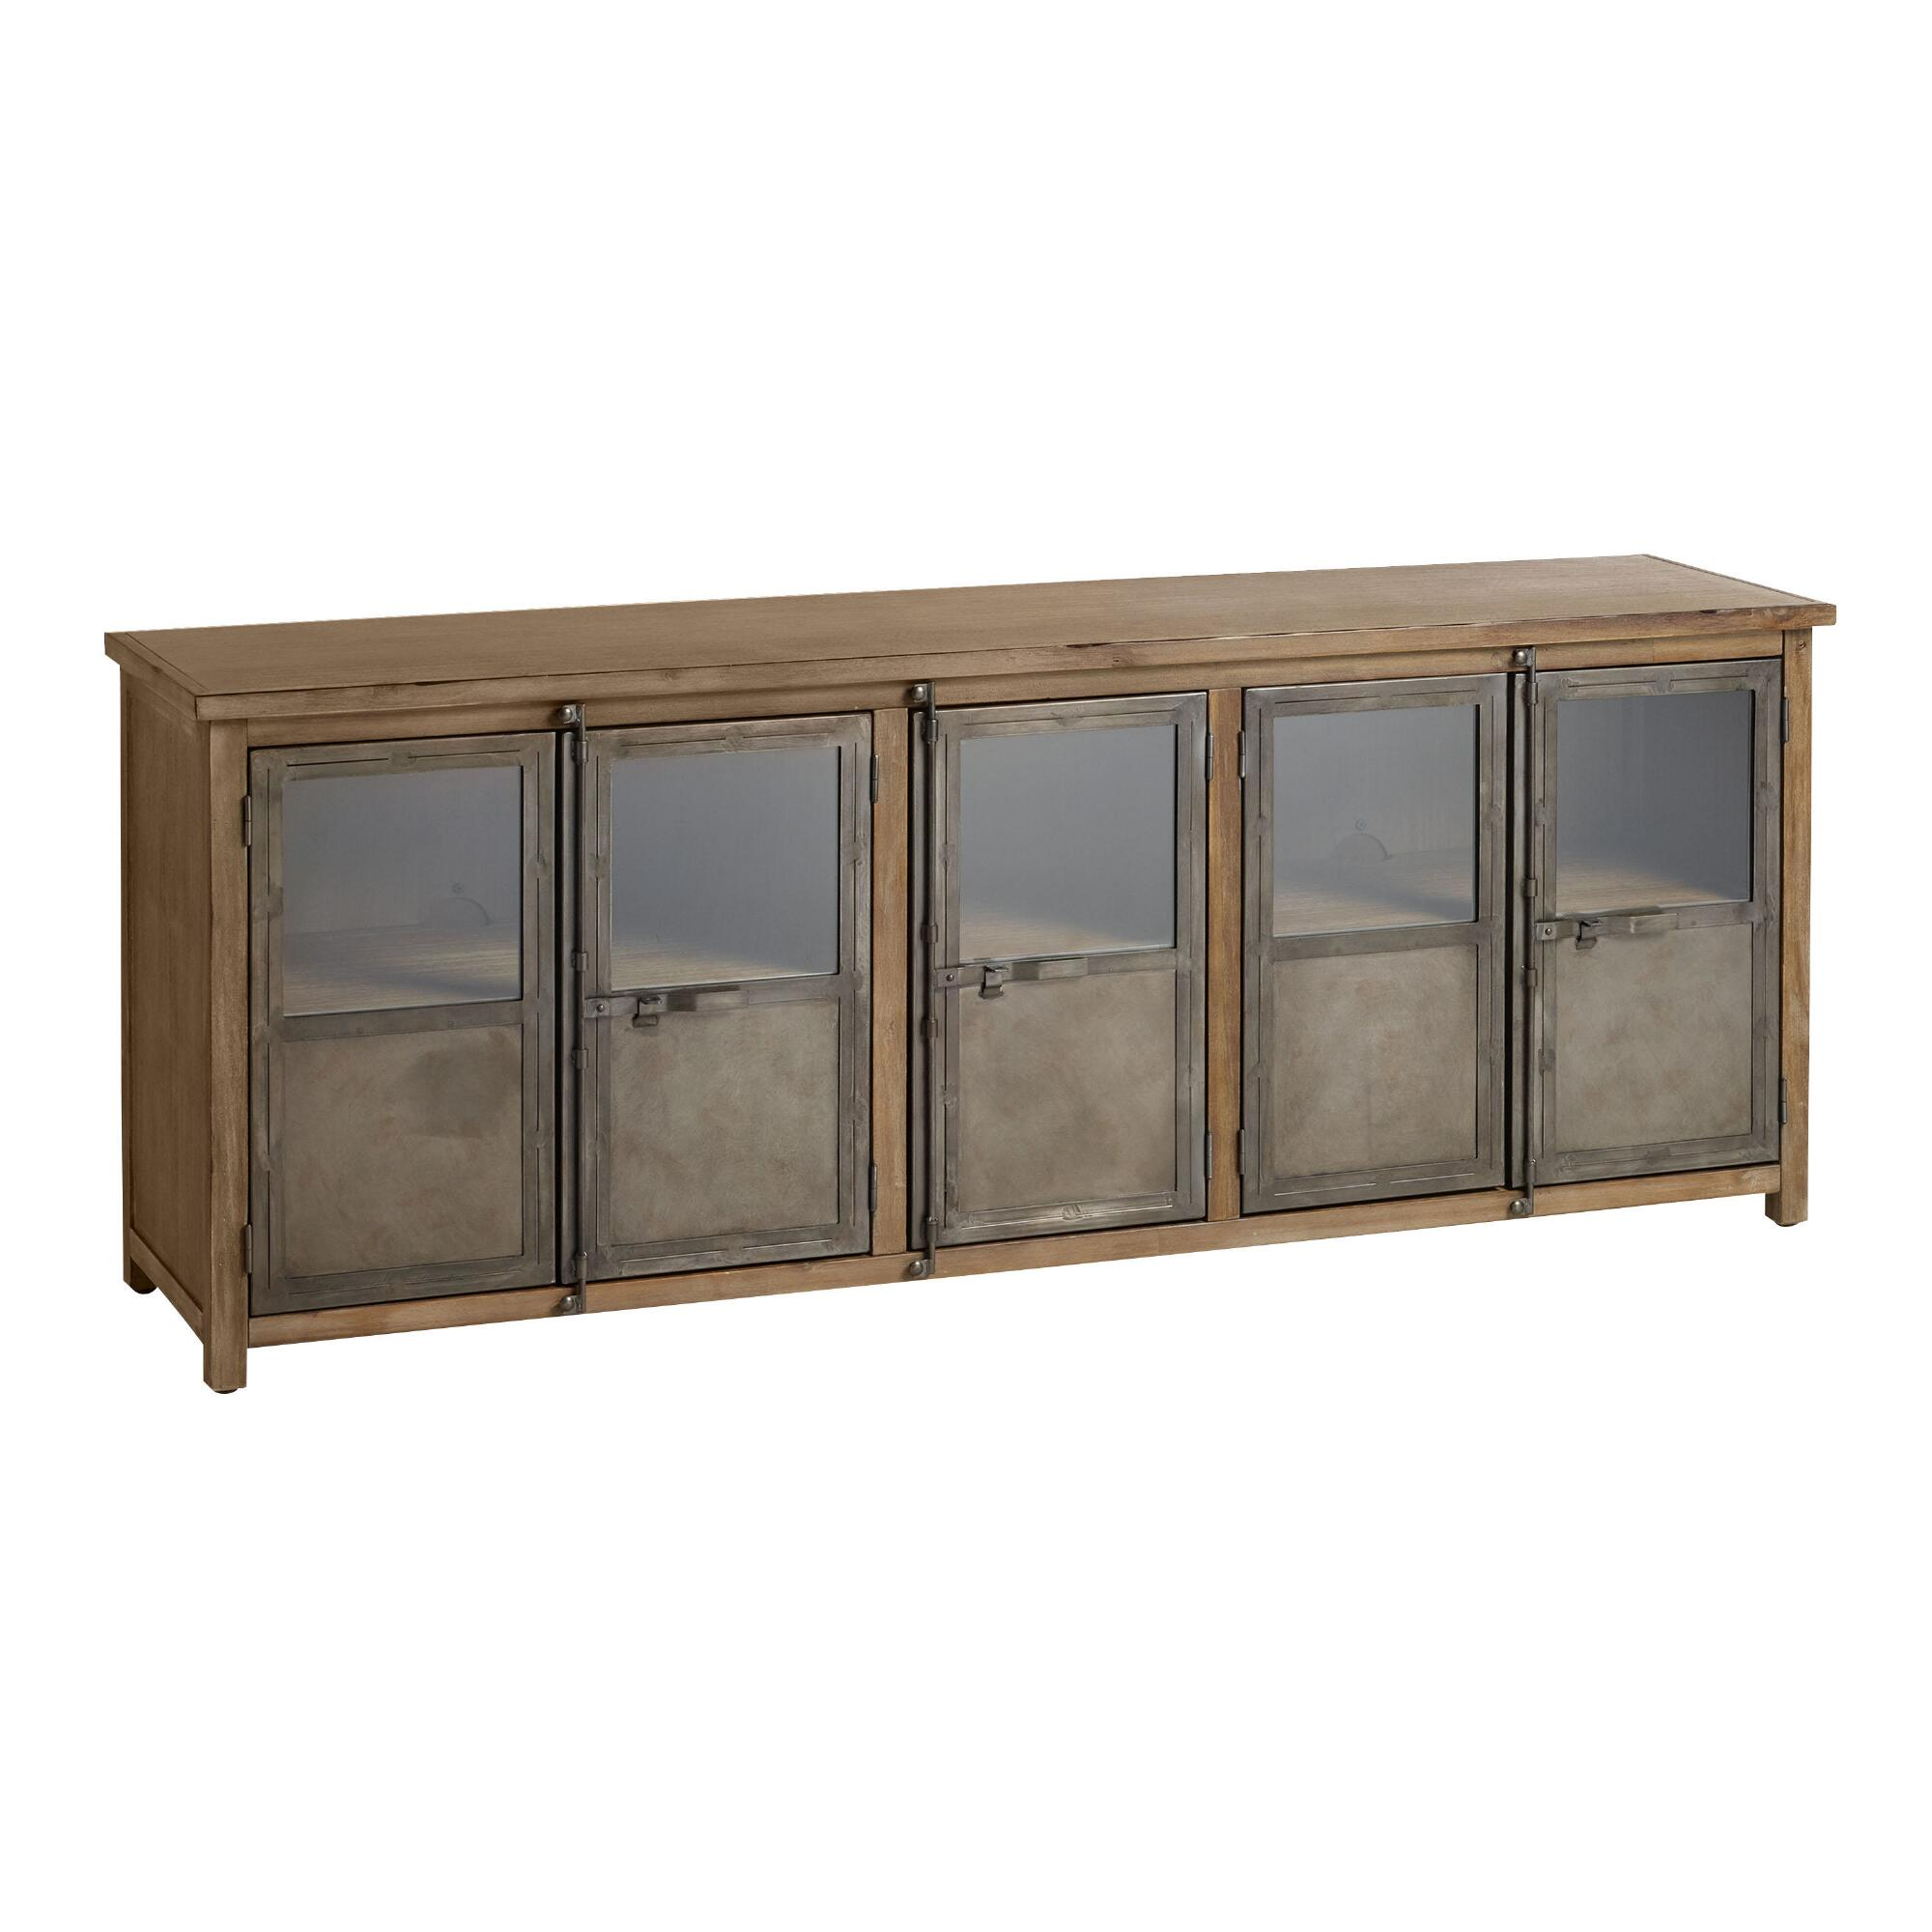 Large wood and metal langley storage cabinet world market